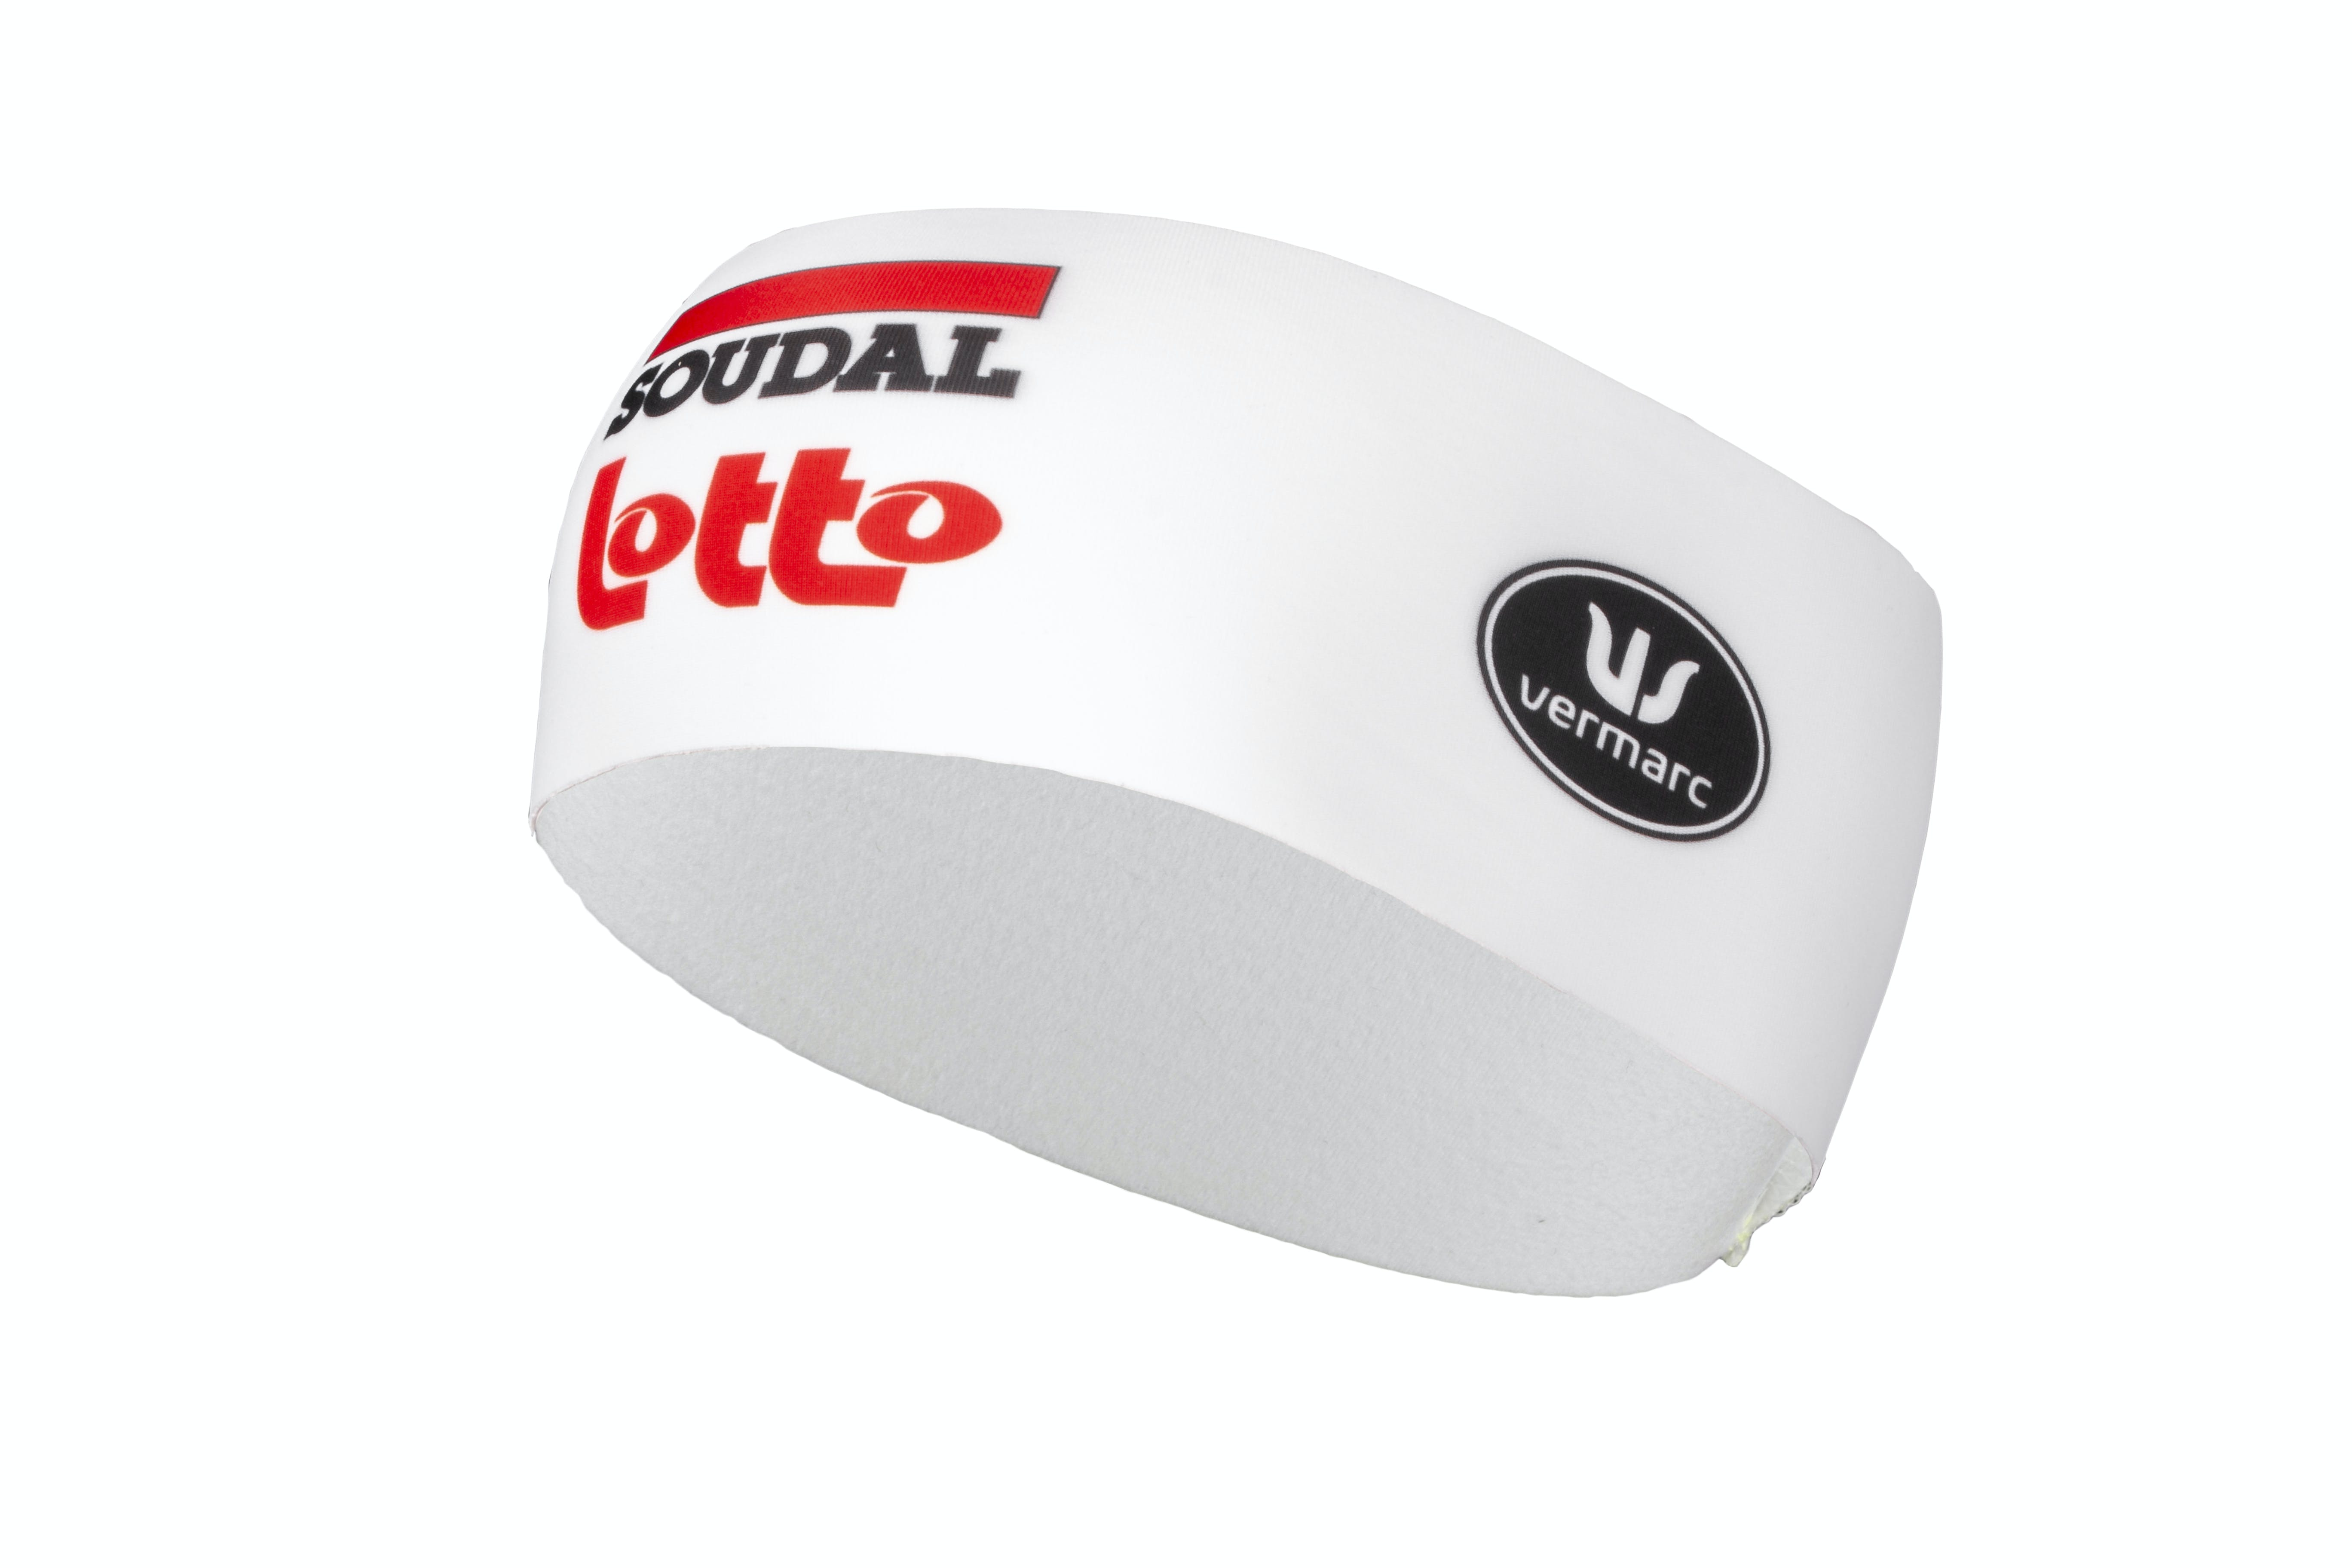 Soudal Lotto 2020 Haarband